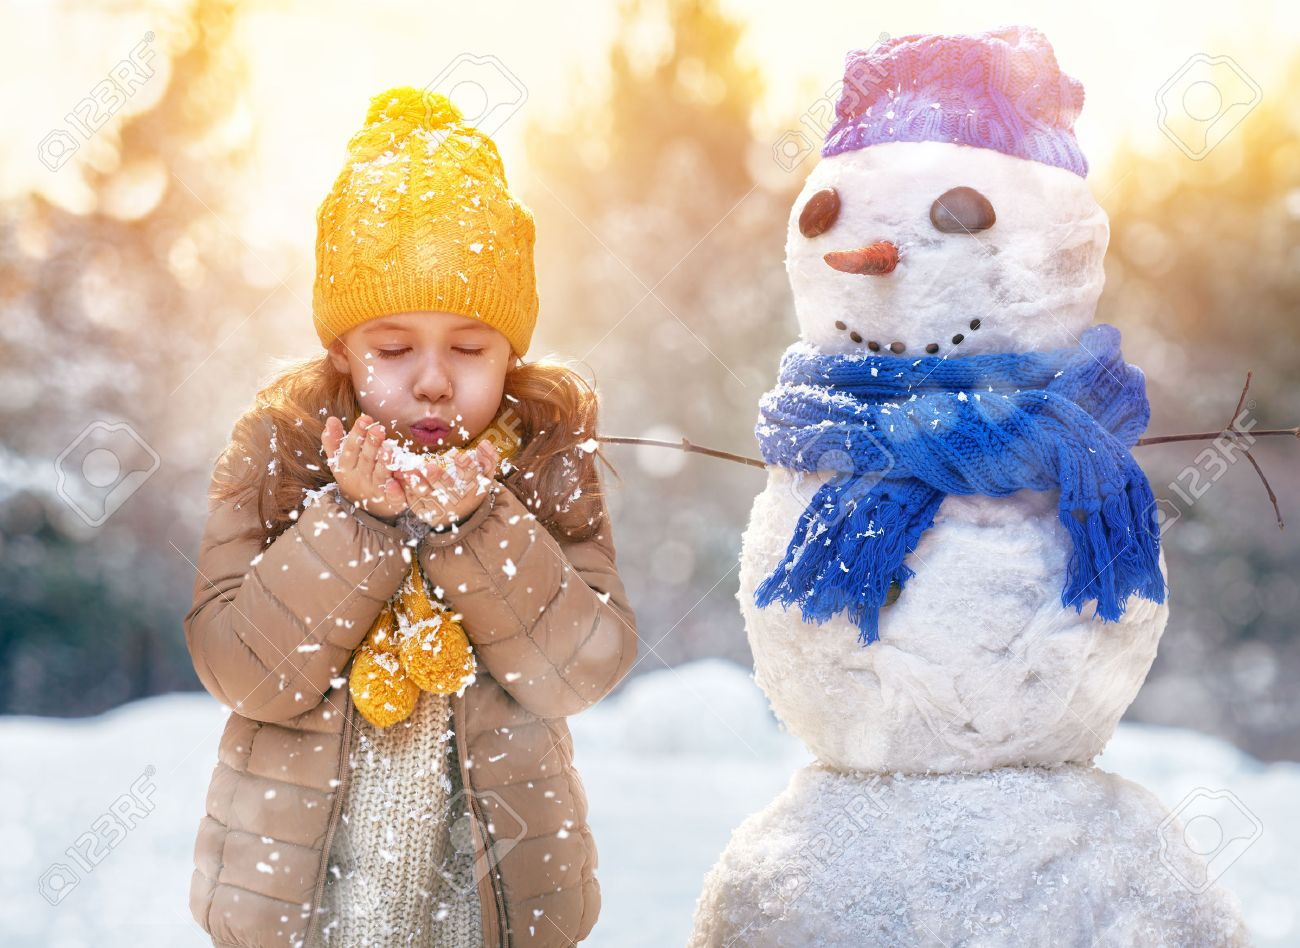 happy child girl plaing with a snowman on a snowy winter walk - 48980752